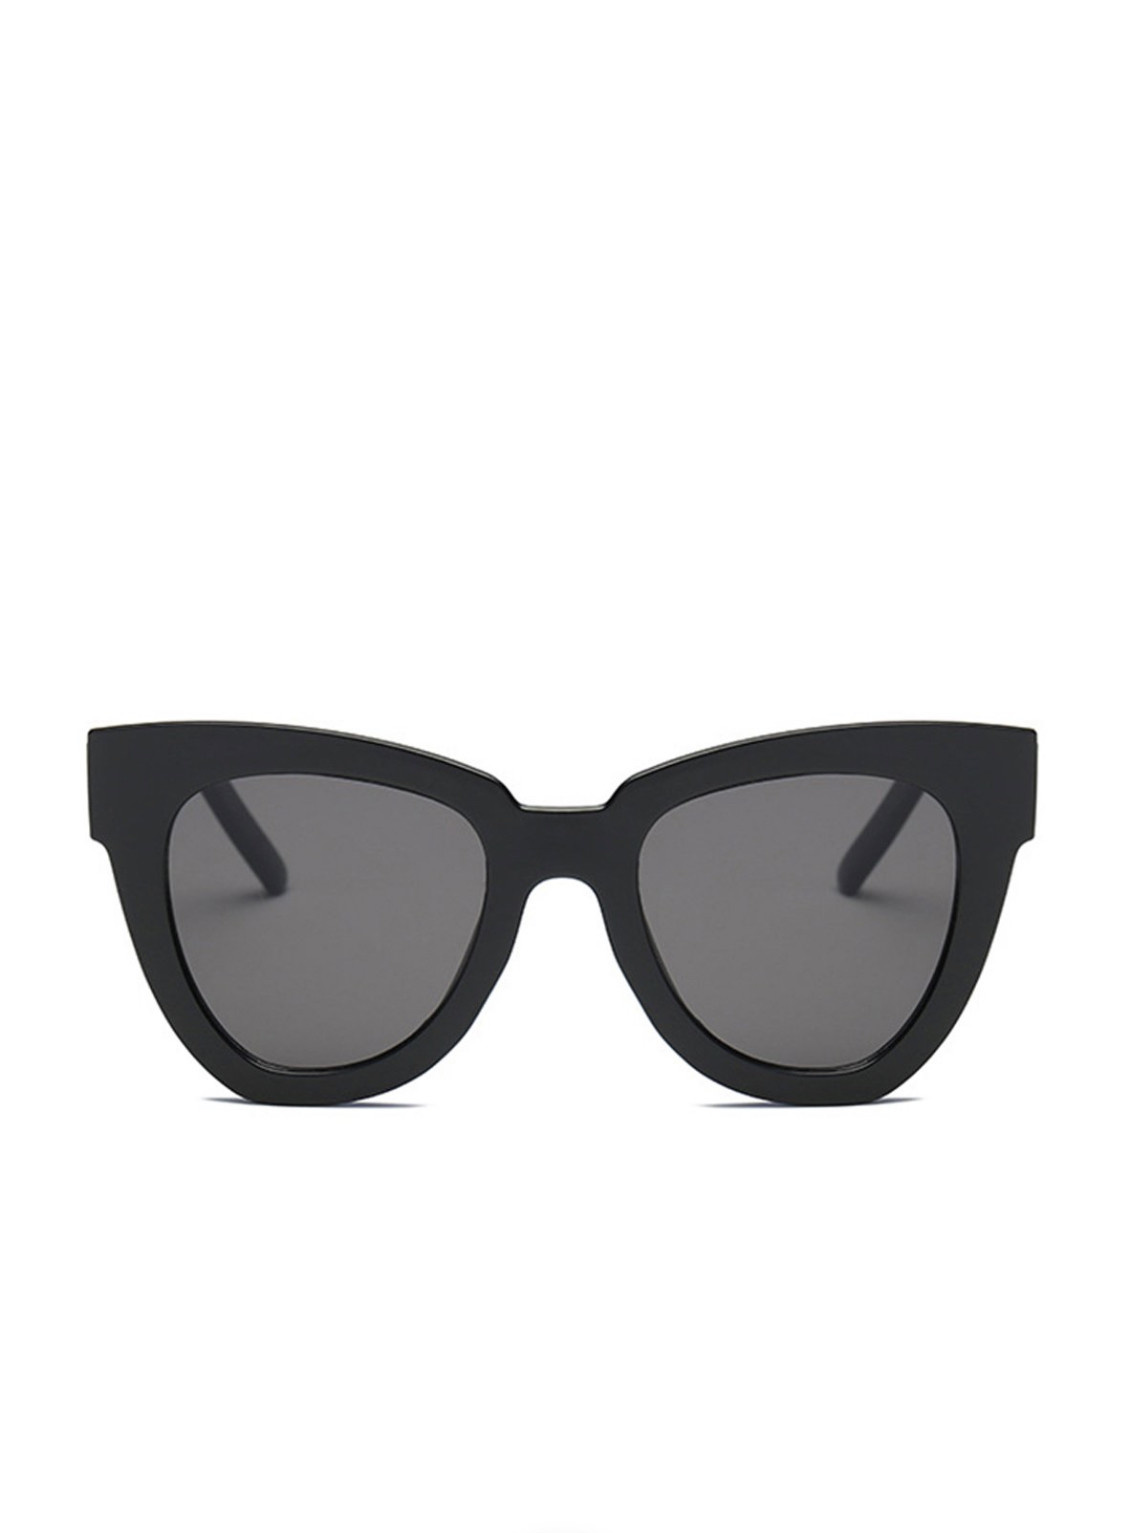 SHADY LADY EYEWEAR SHADY LADY EYEWEAR HALYEY BLACK